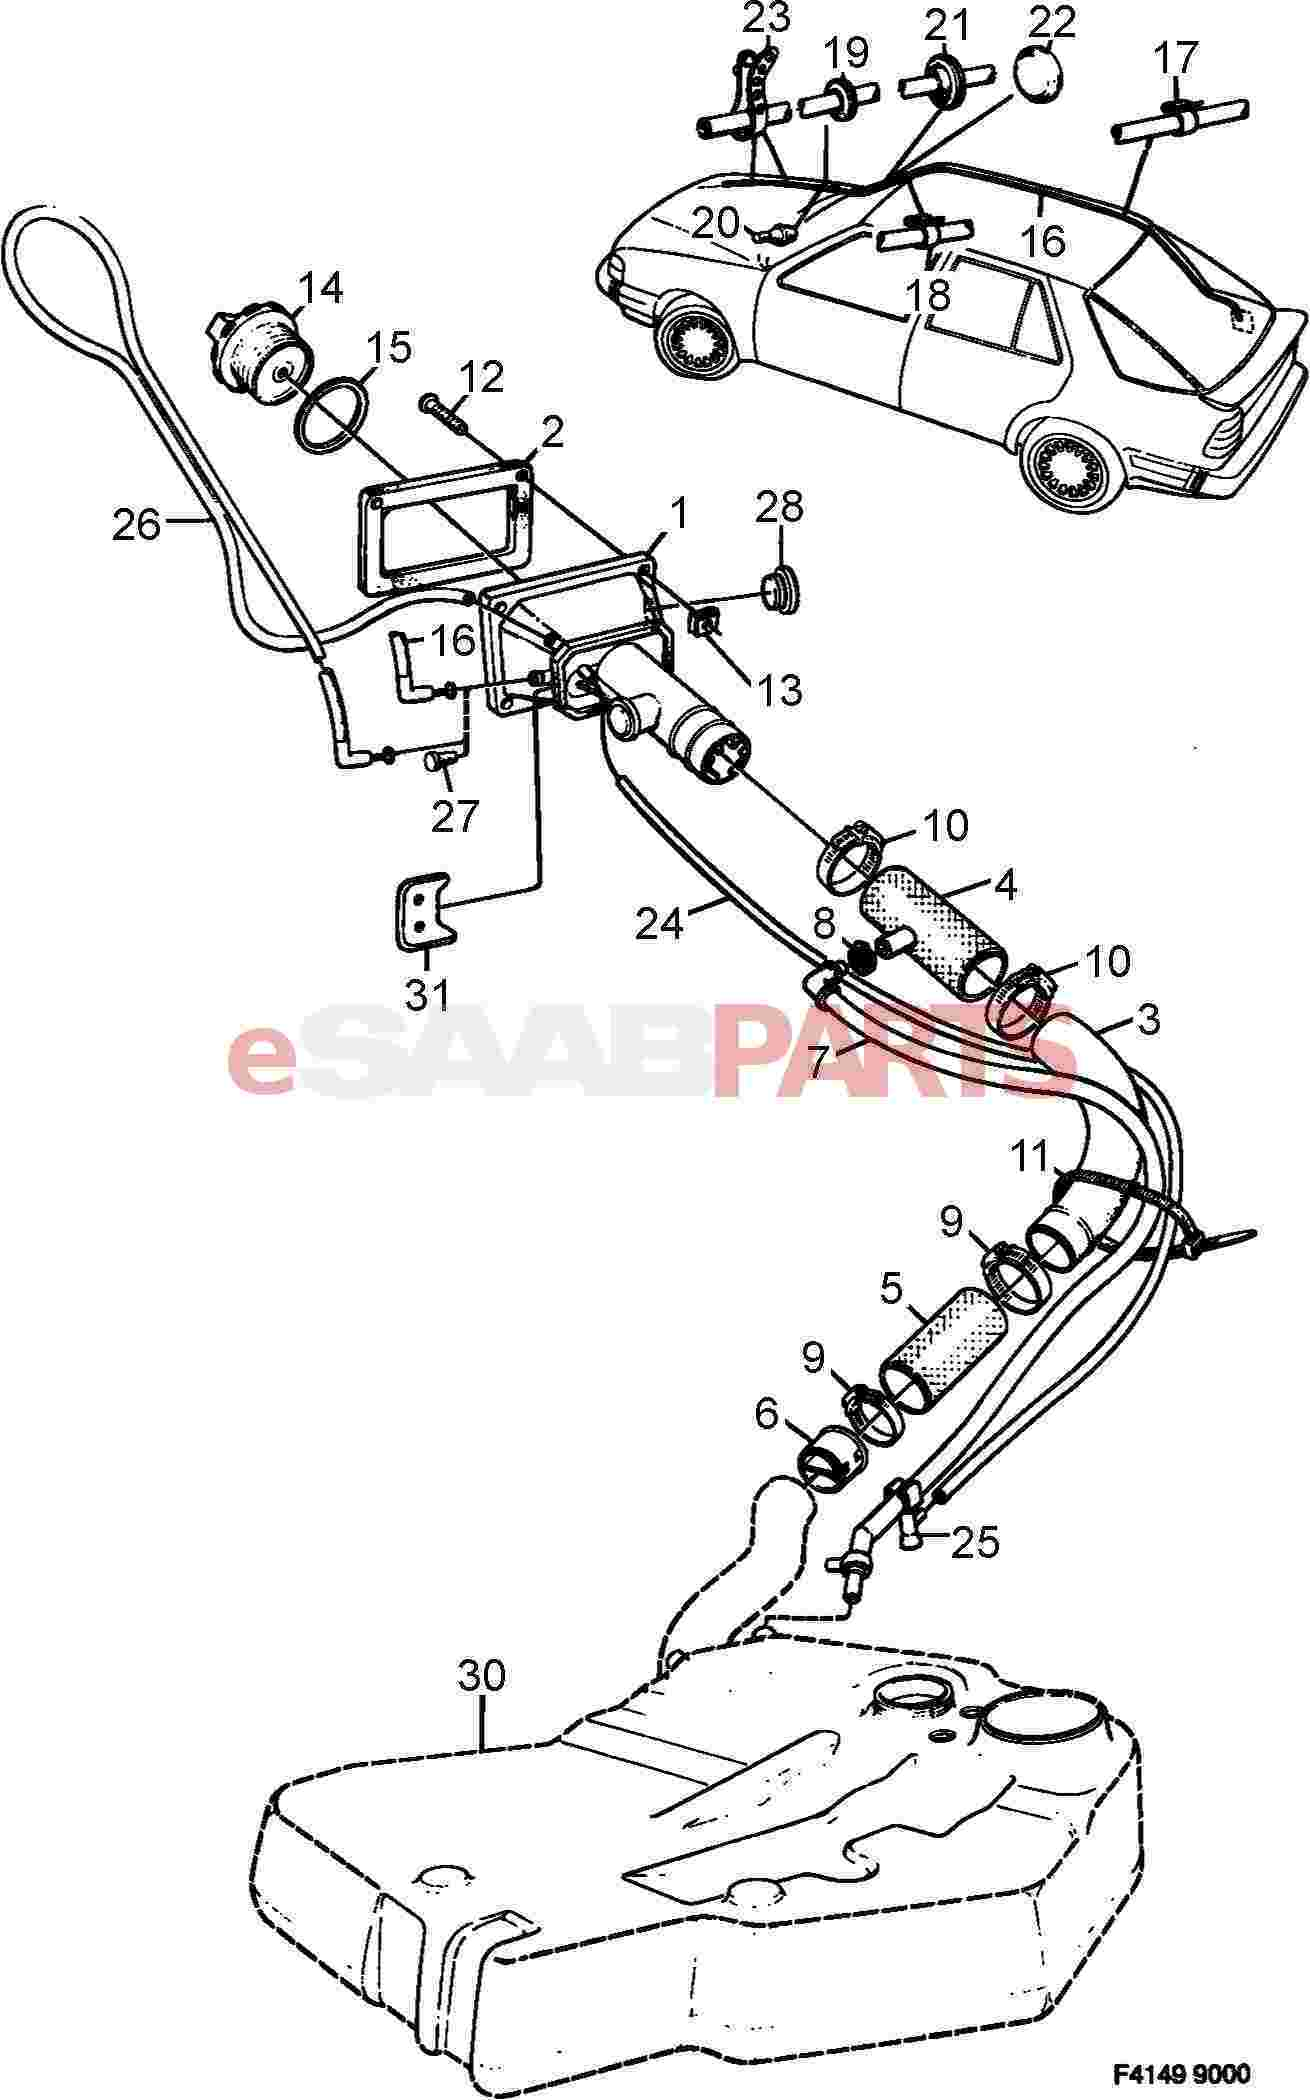 [1986 saab 9000 hydraulic fan pump removal] - service ... 1992 saab 900 wiring diagram